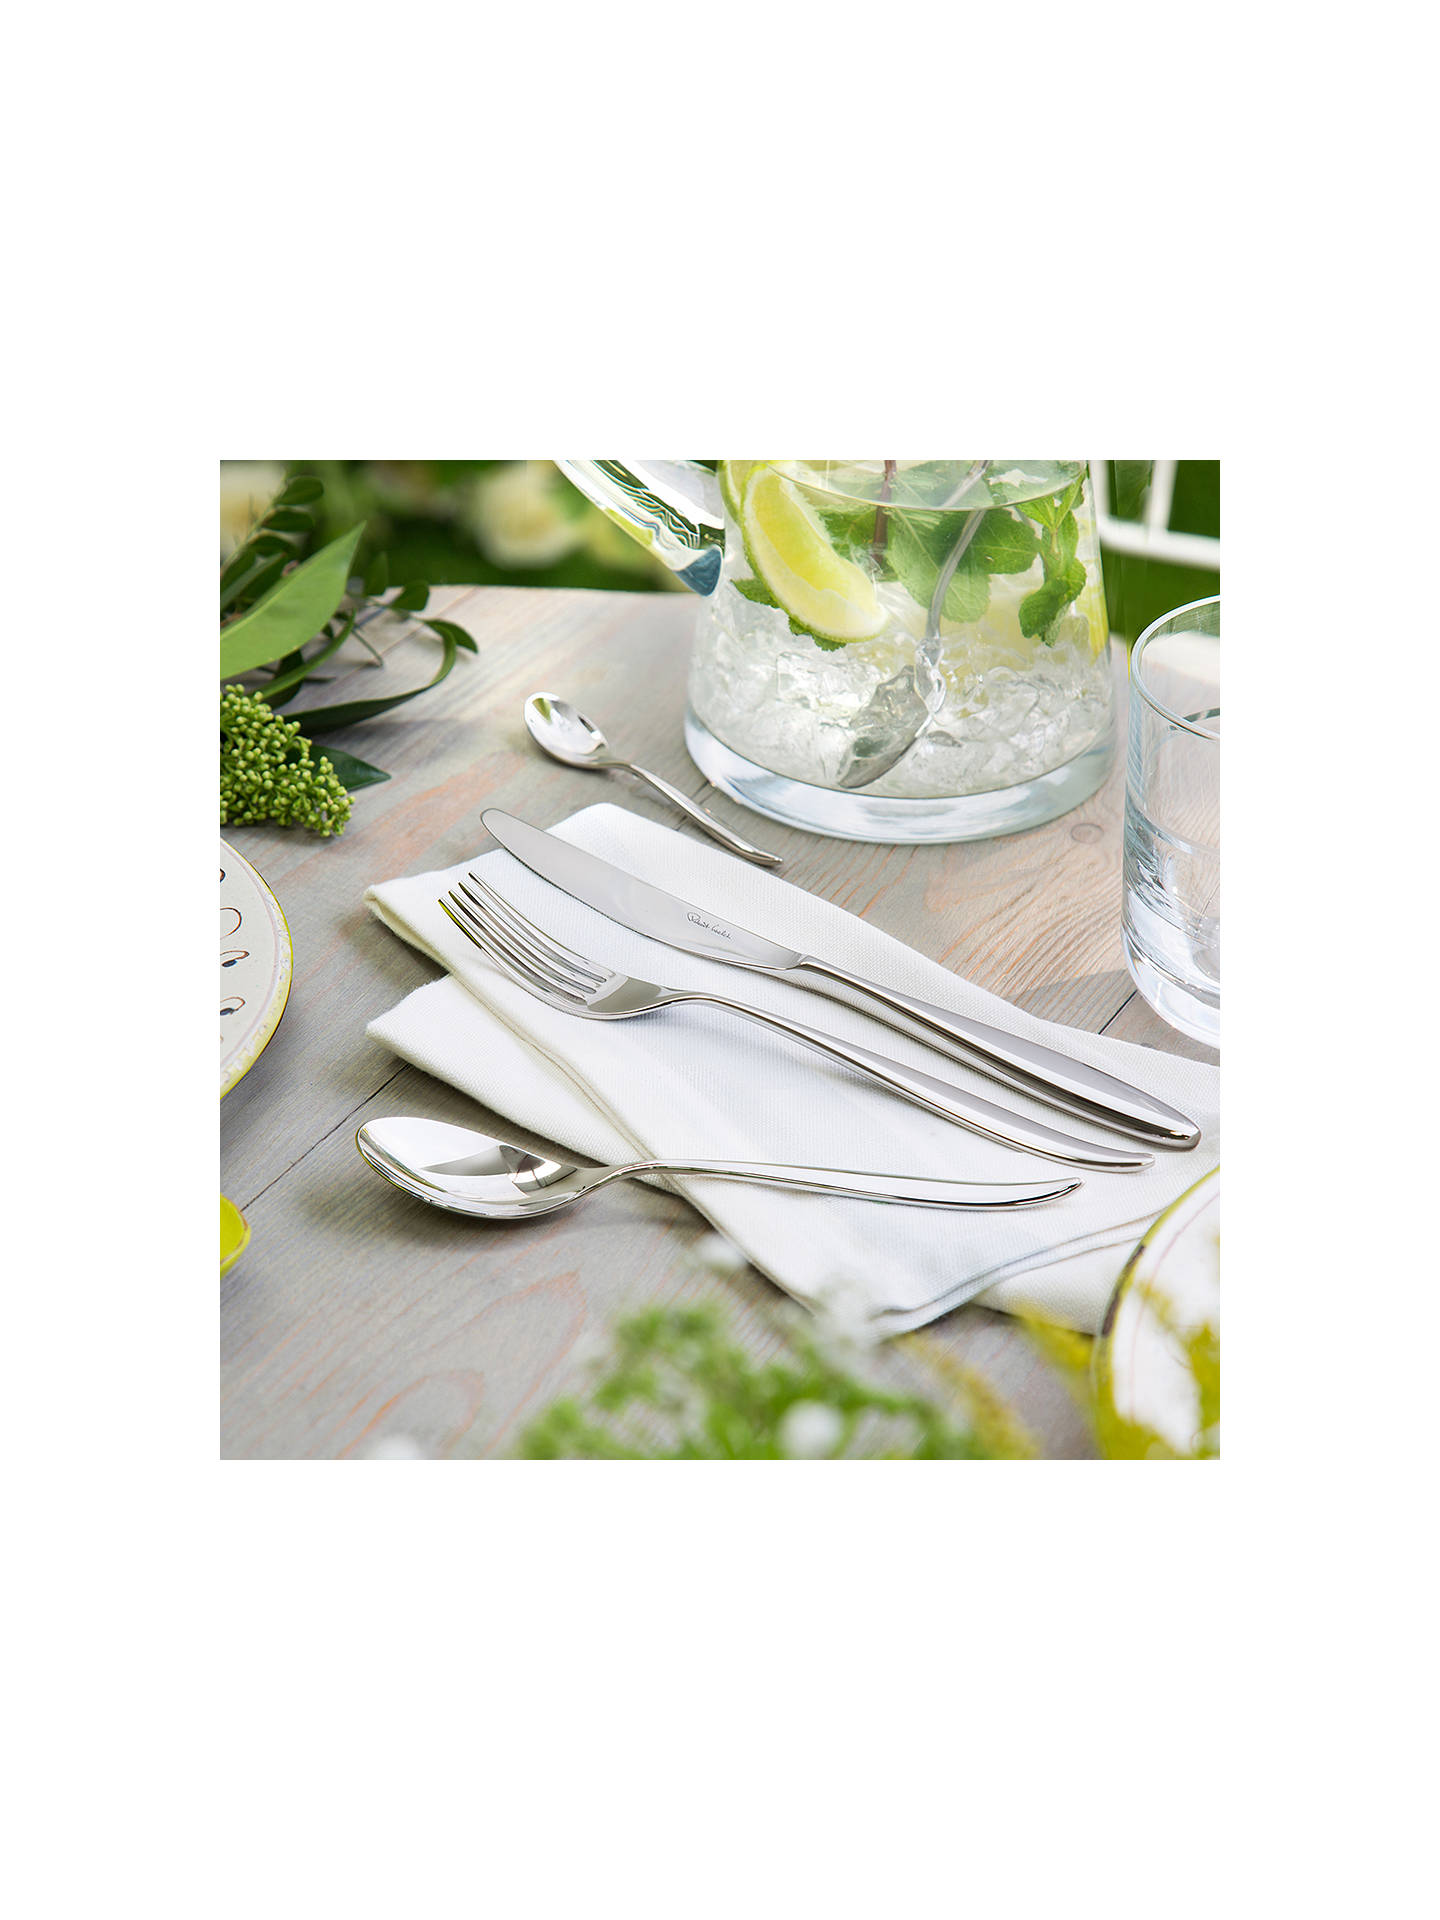 Buy Robert Welch Hidcote Cutlery Set, 24 Piece/6 Place Settings Online at johnlewis.com